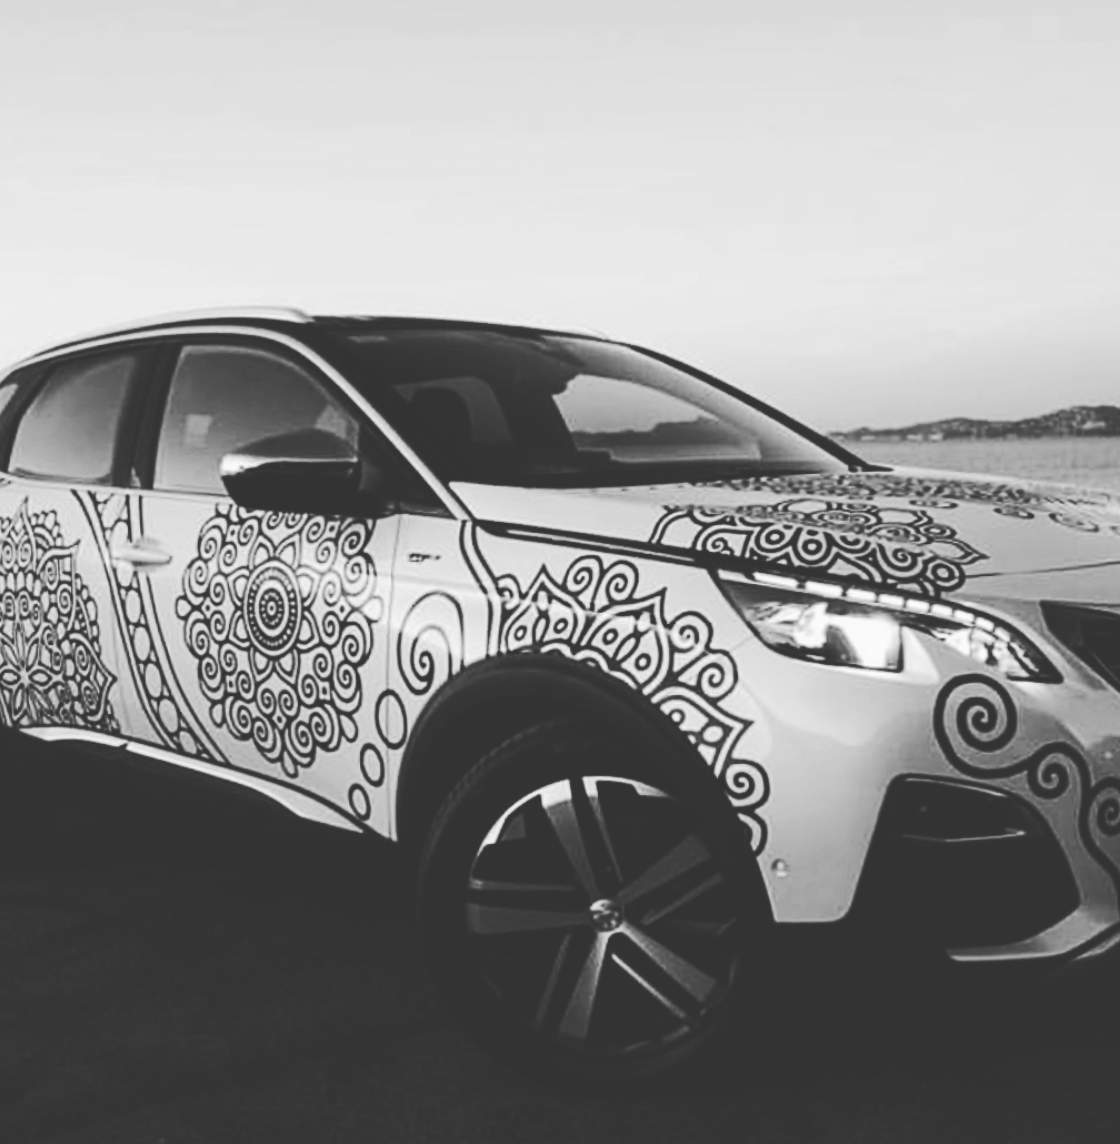 fortyonehundred X Peugeot collaboration